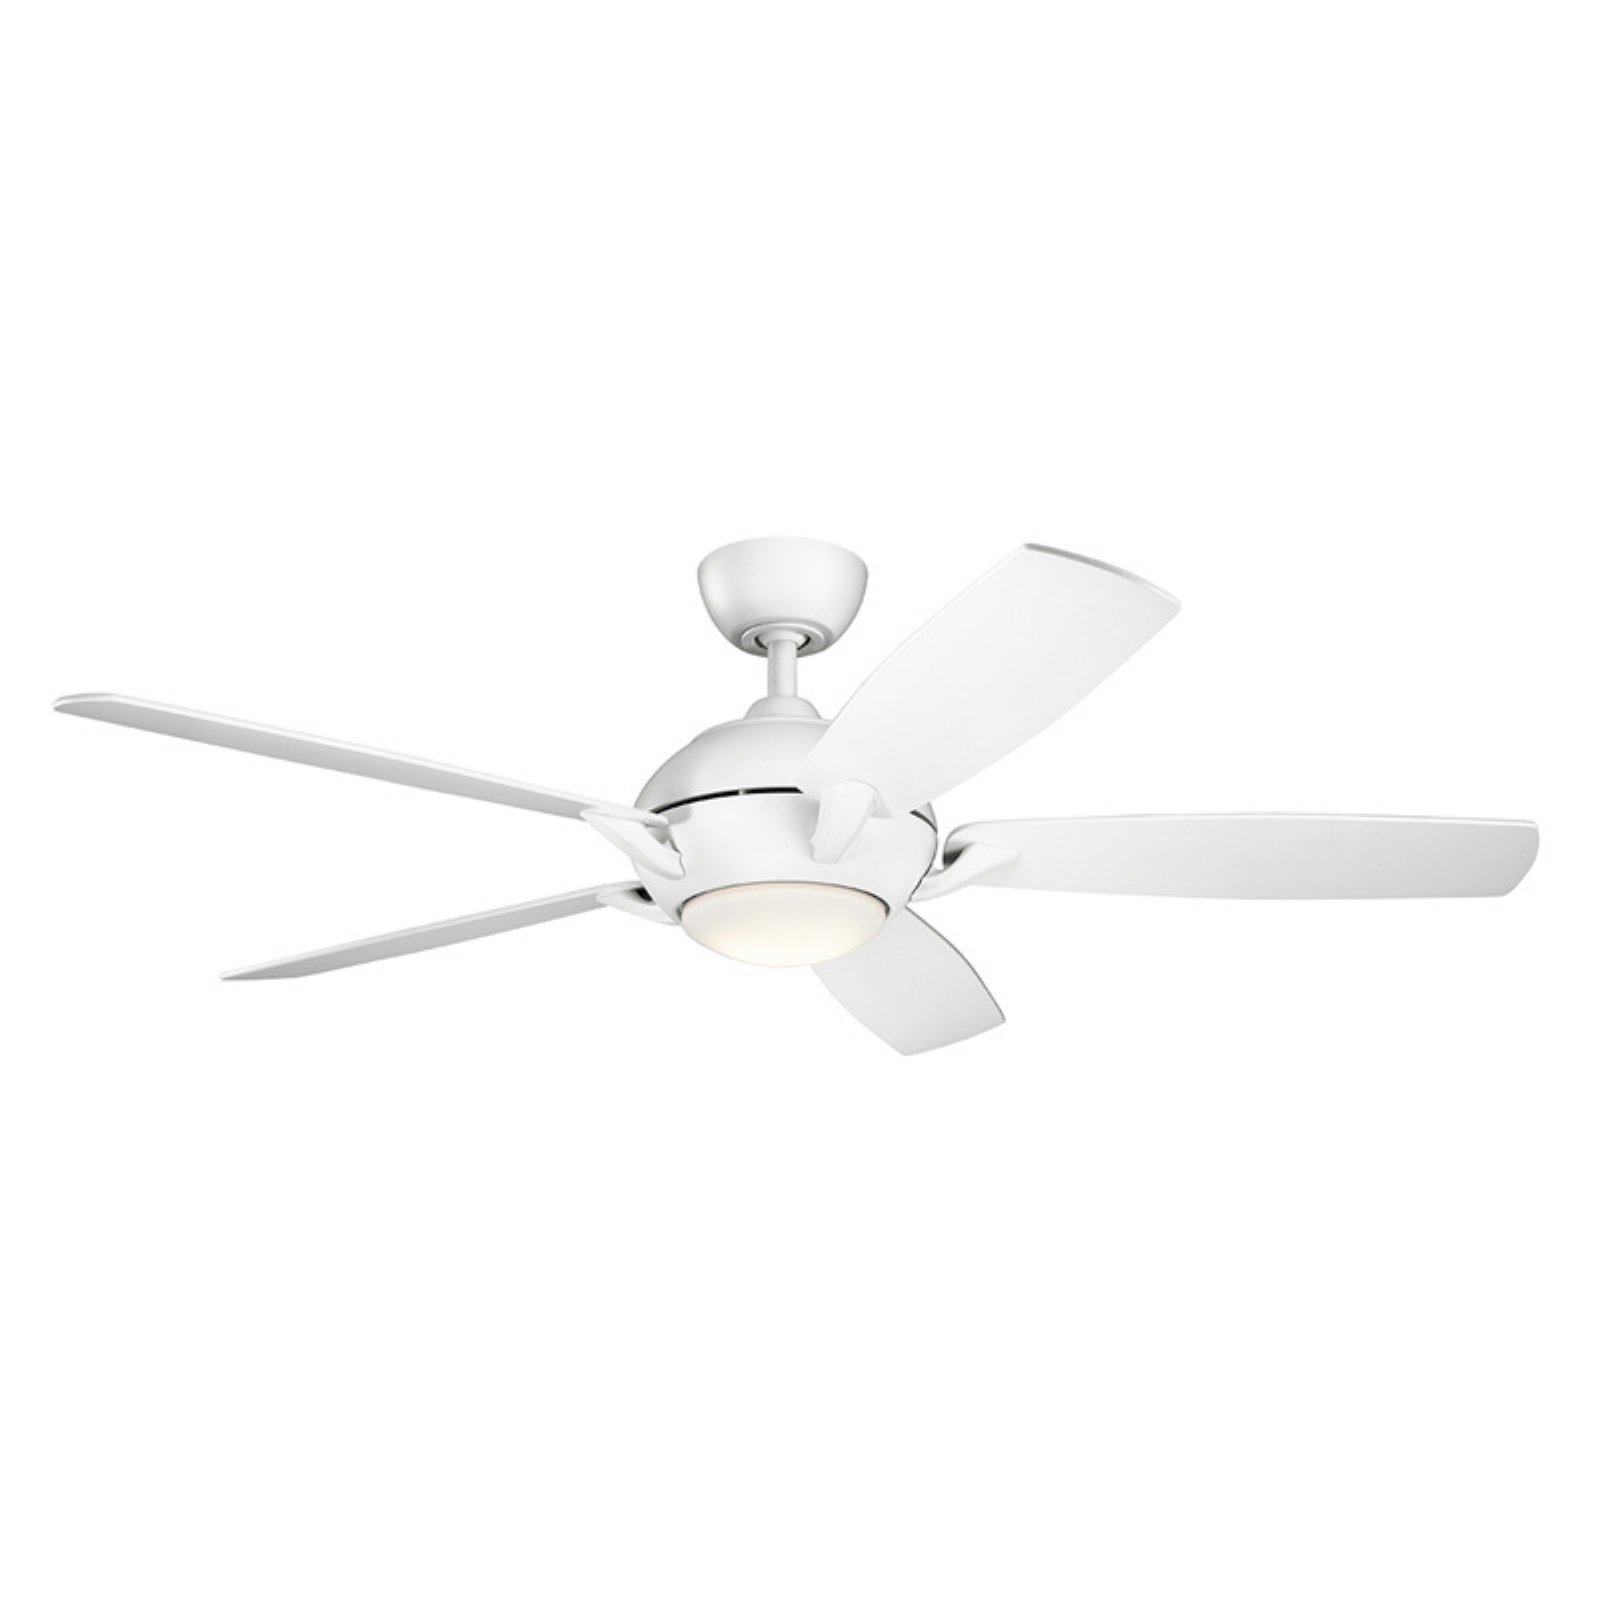 Kichler Geno 54 In Indoor Ceiling Fan